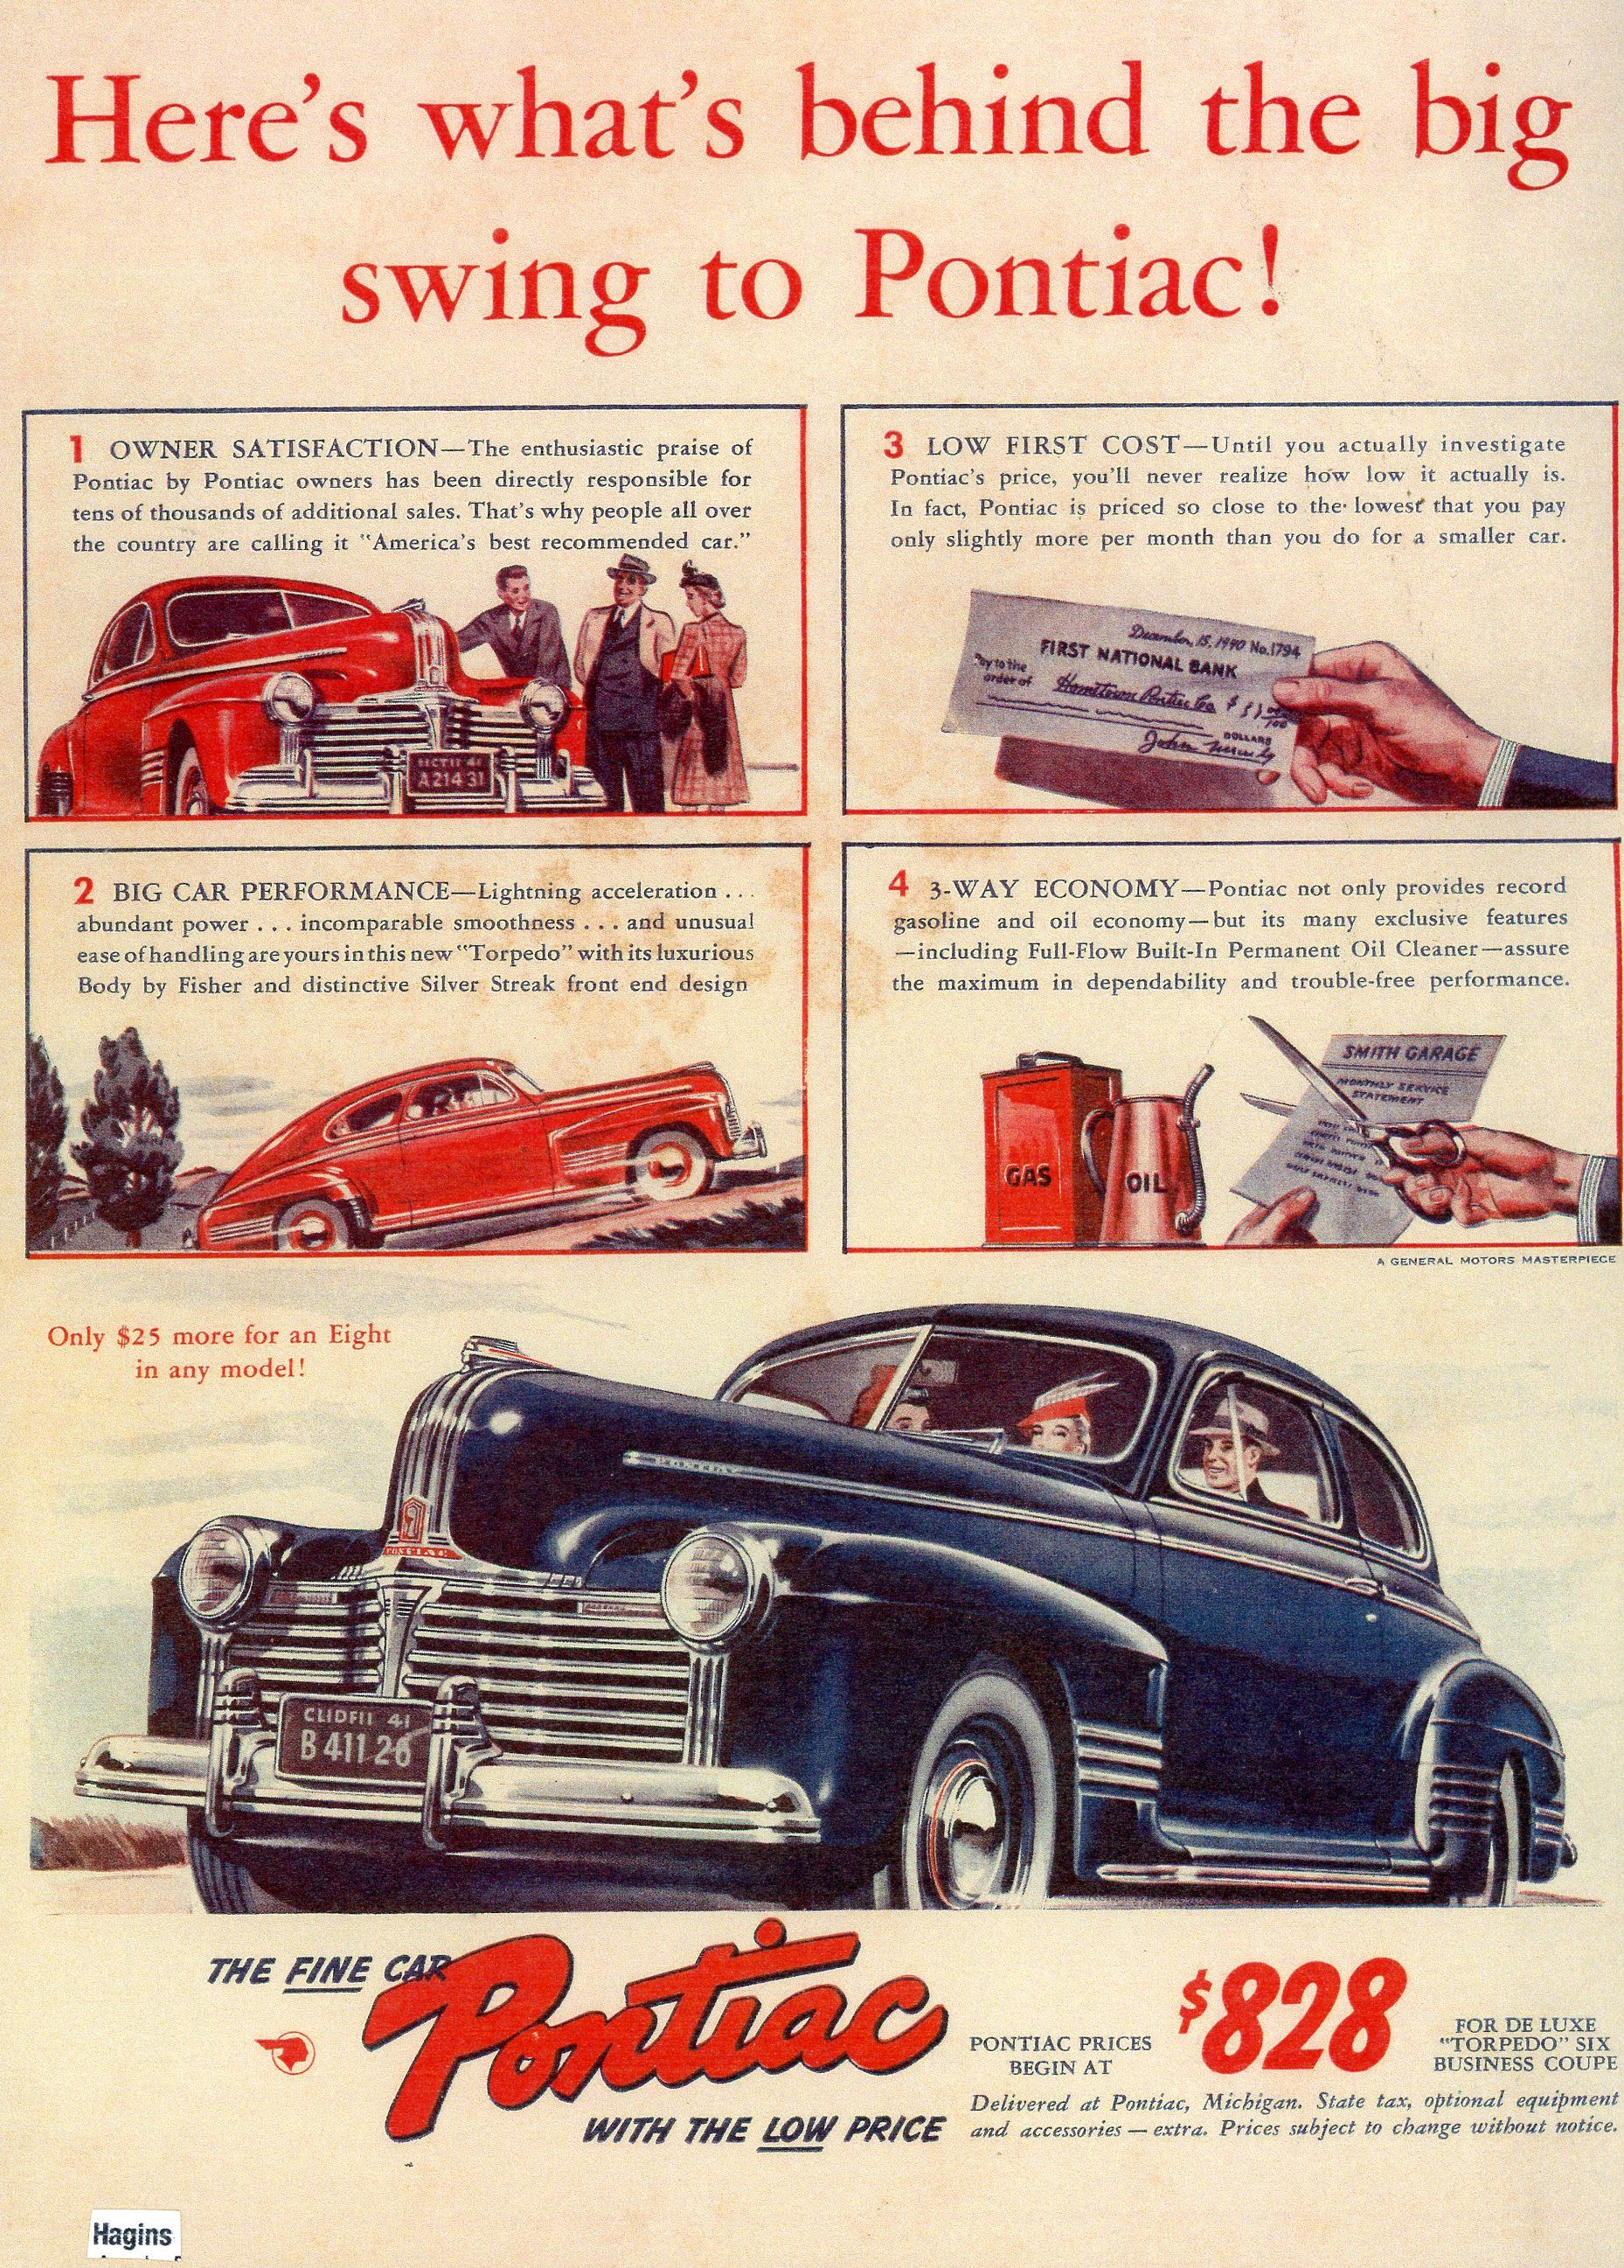 1941 ad. Hagins | 1940s Ads | Pinterest | Ads, Cars and Amazing cars